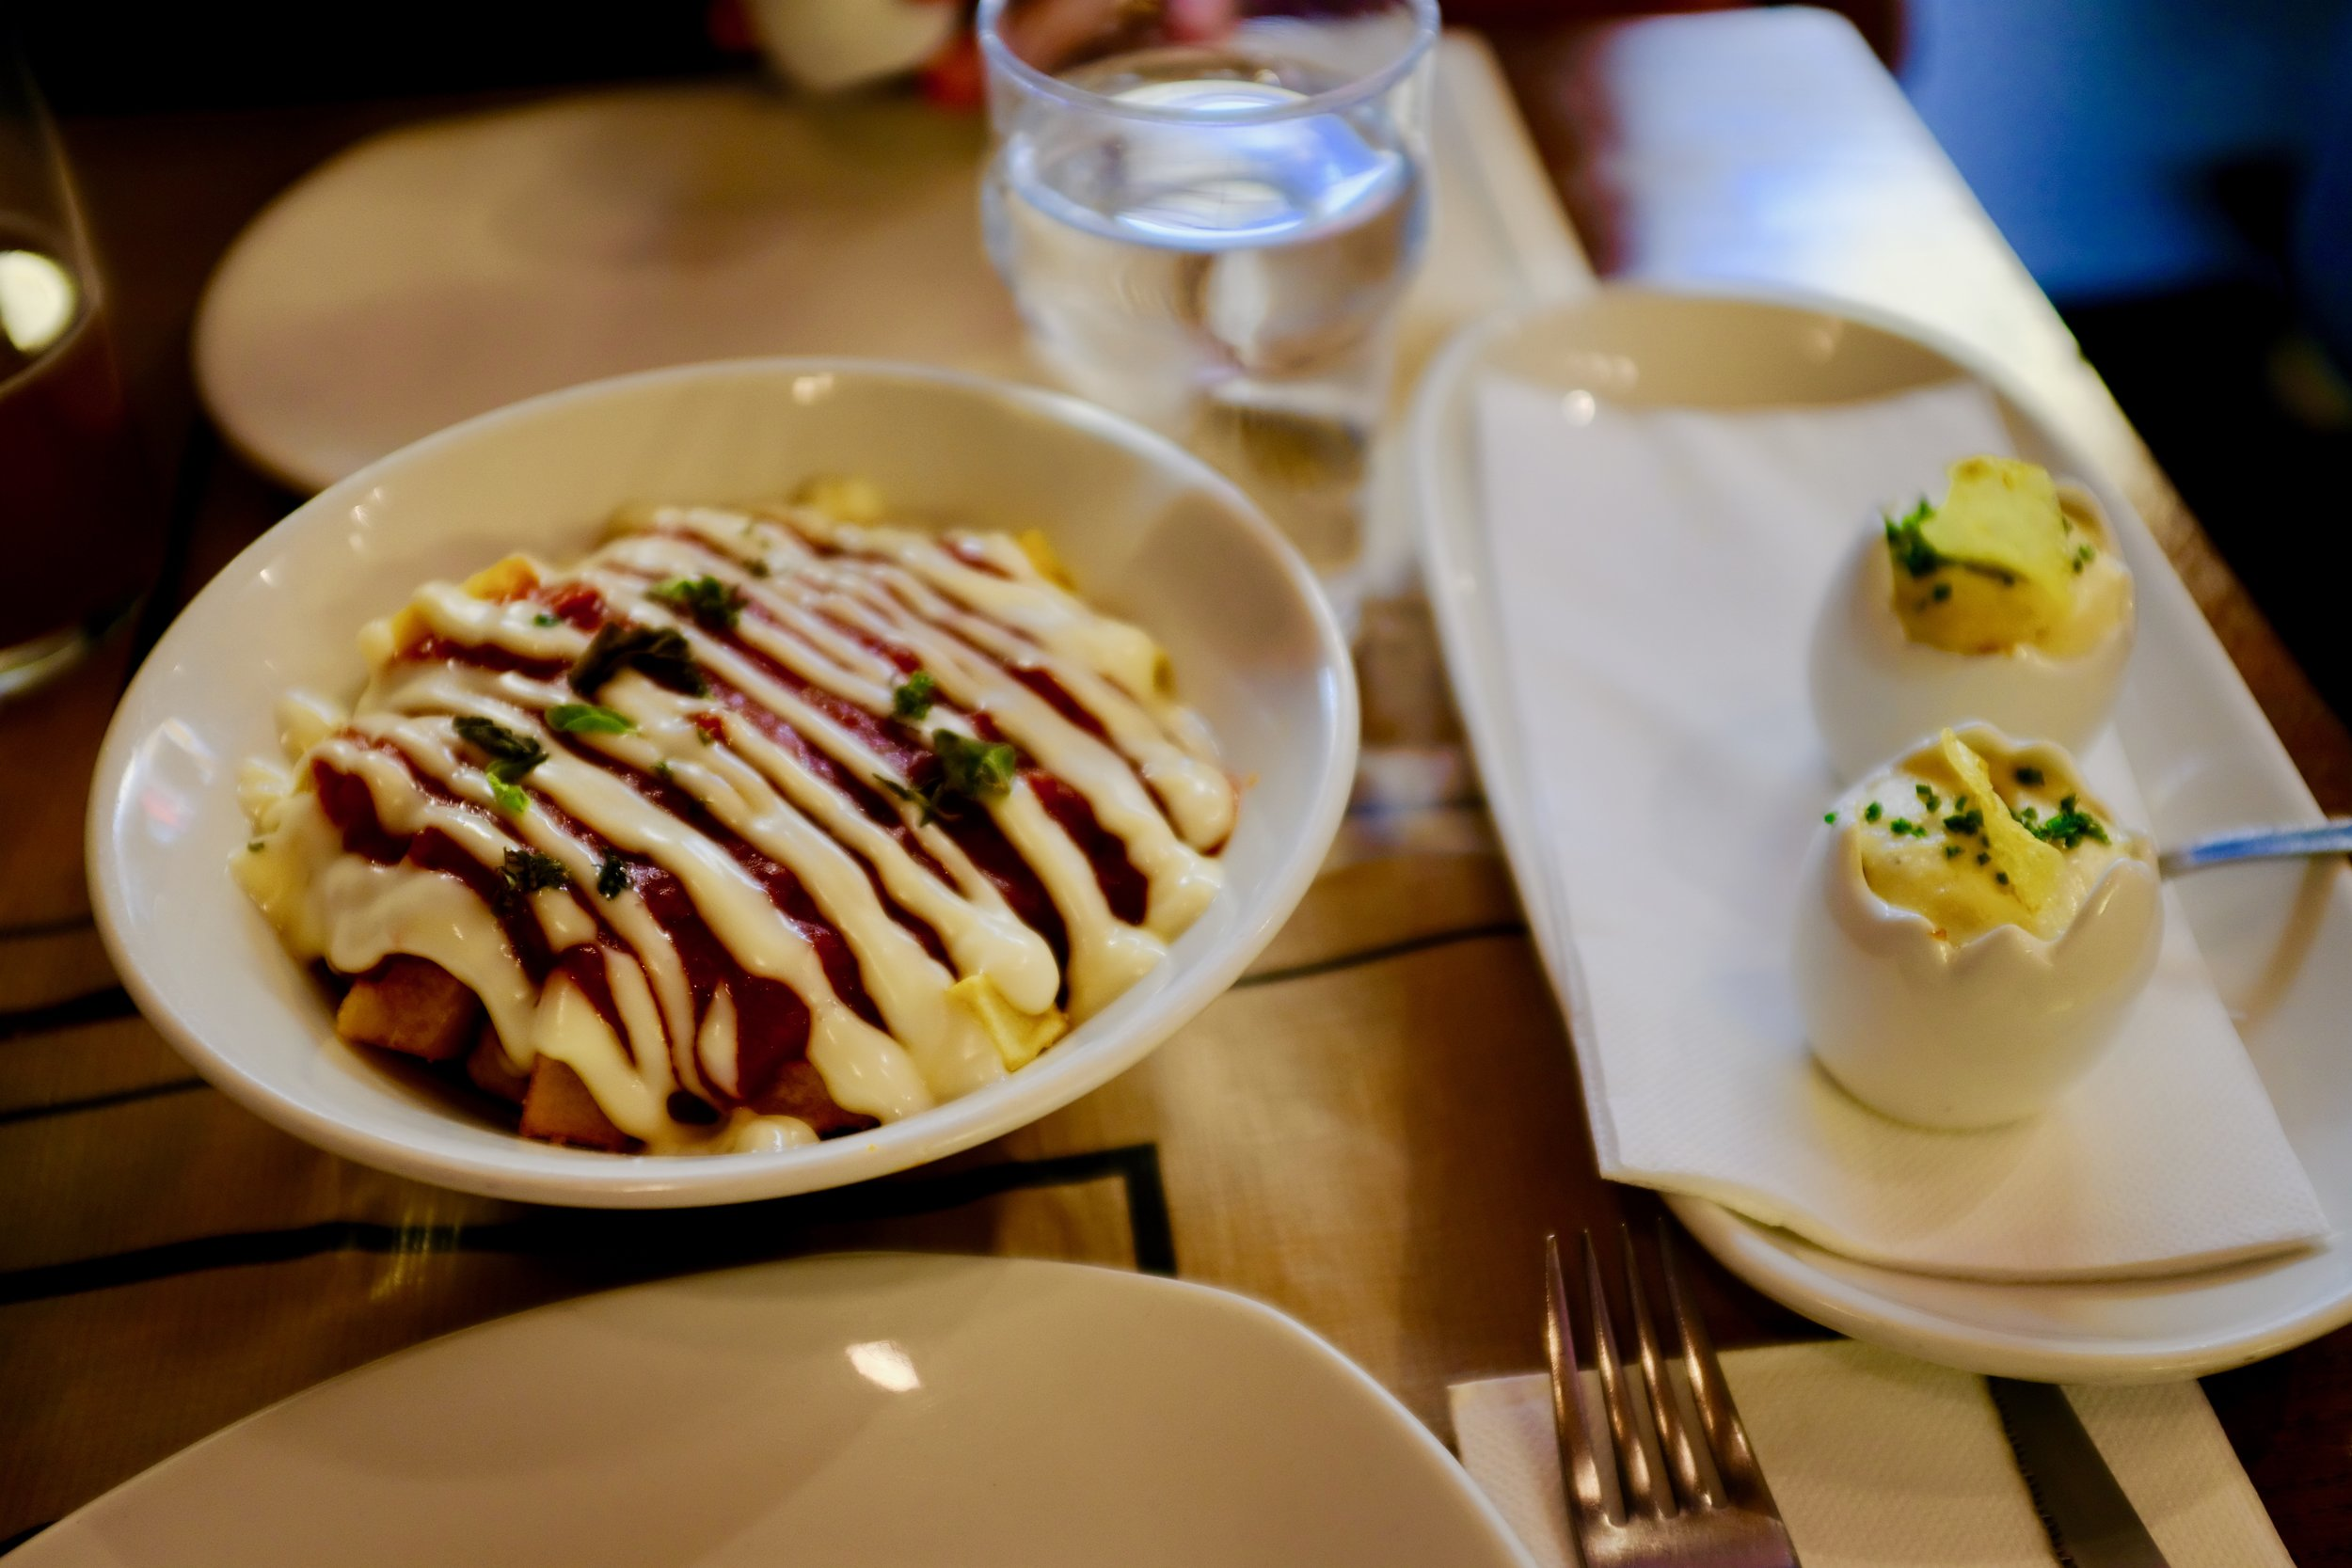 Tapas from Sal Gorda in Seville, Spain – Patatas Bravas and a creative and modern take on Tortillas de Patatas.